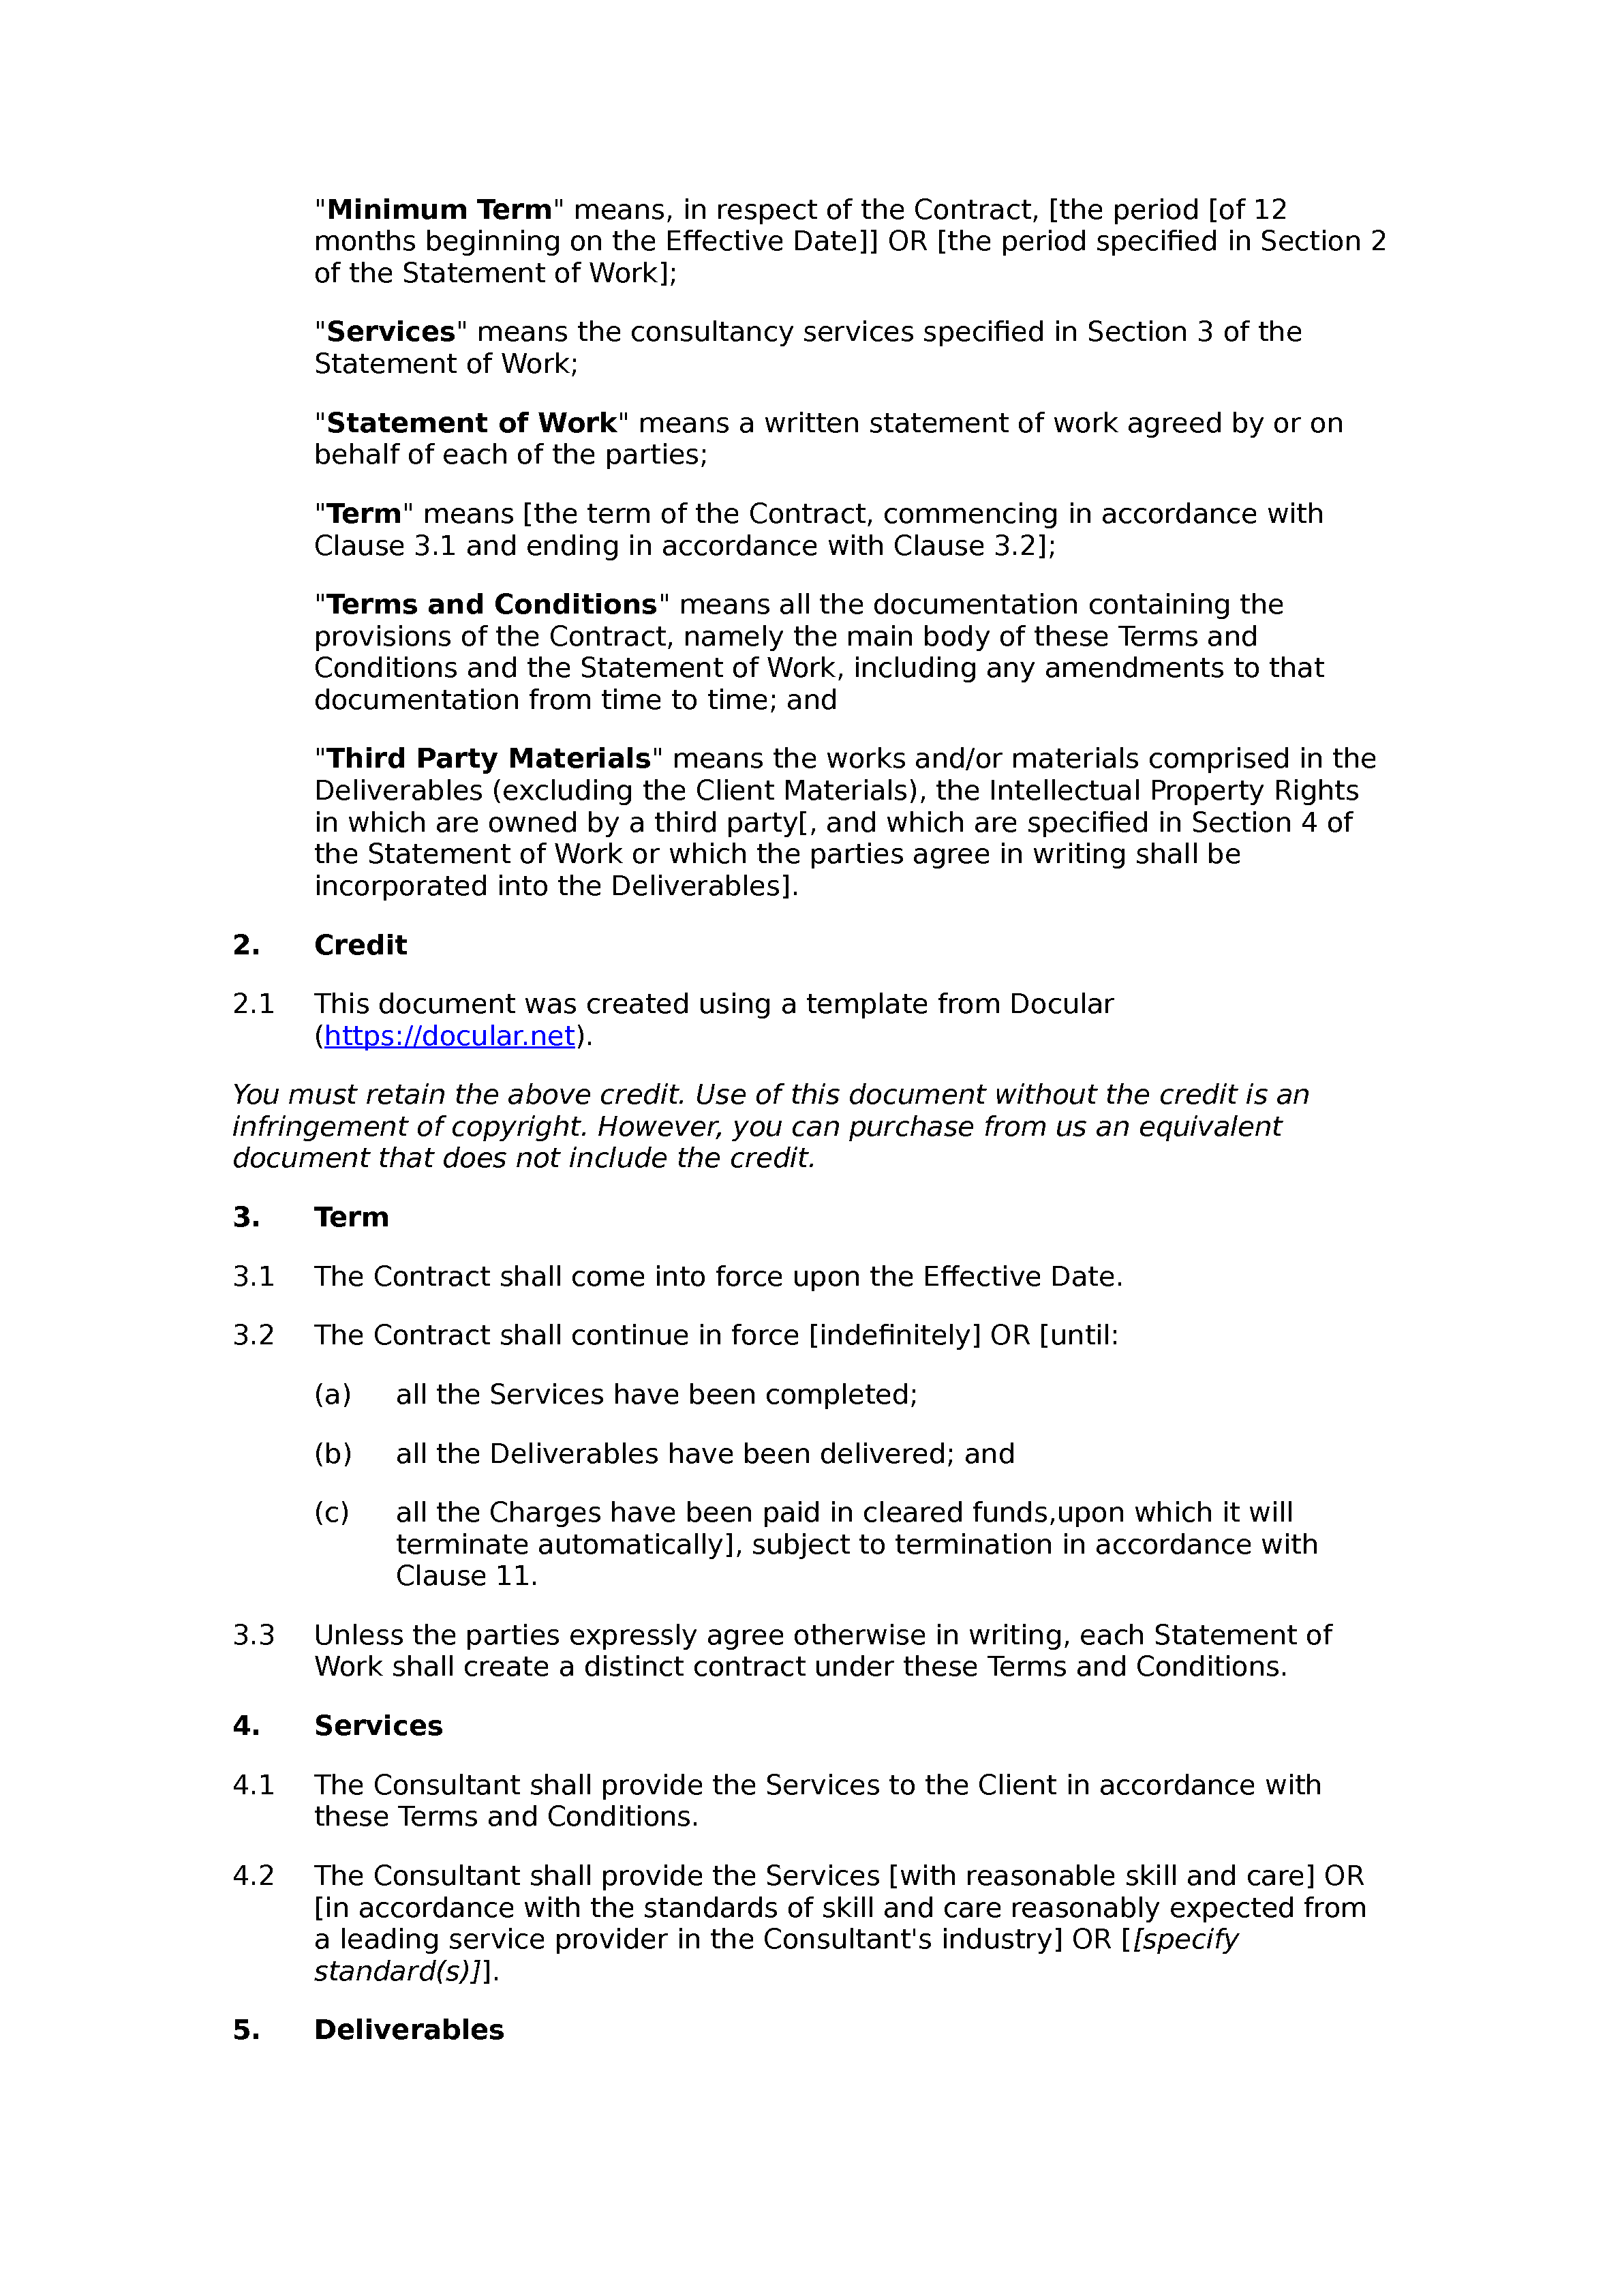 Free consultancy terms and conditions document preview